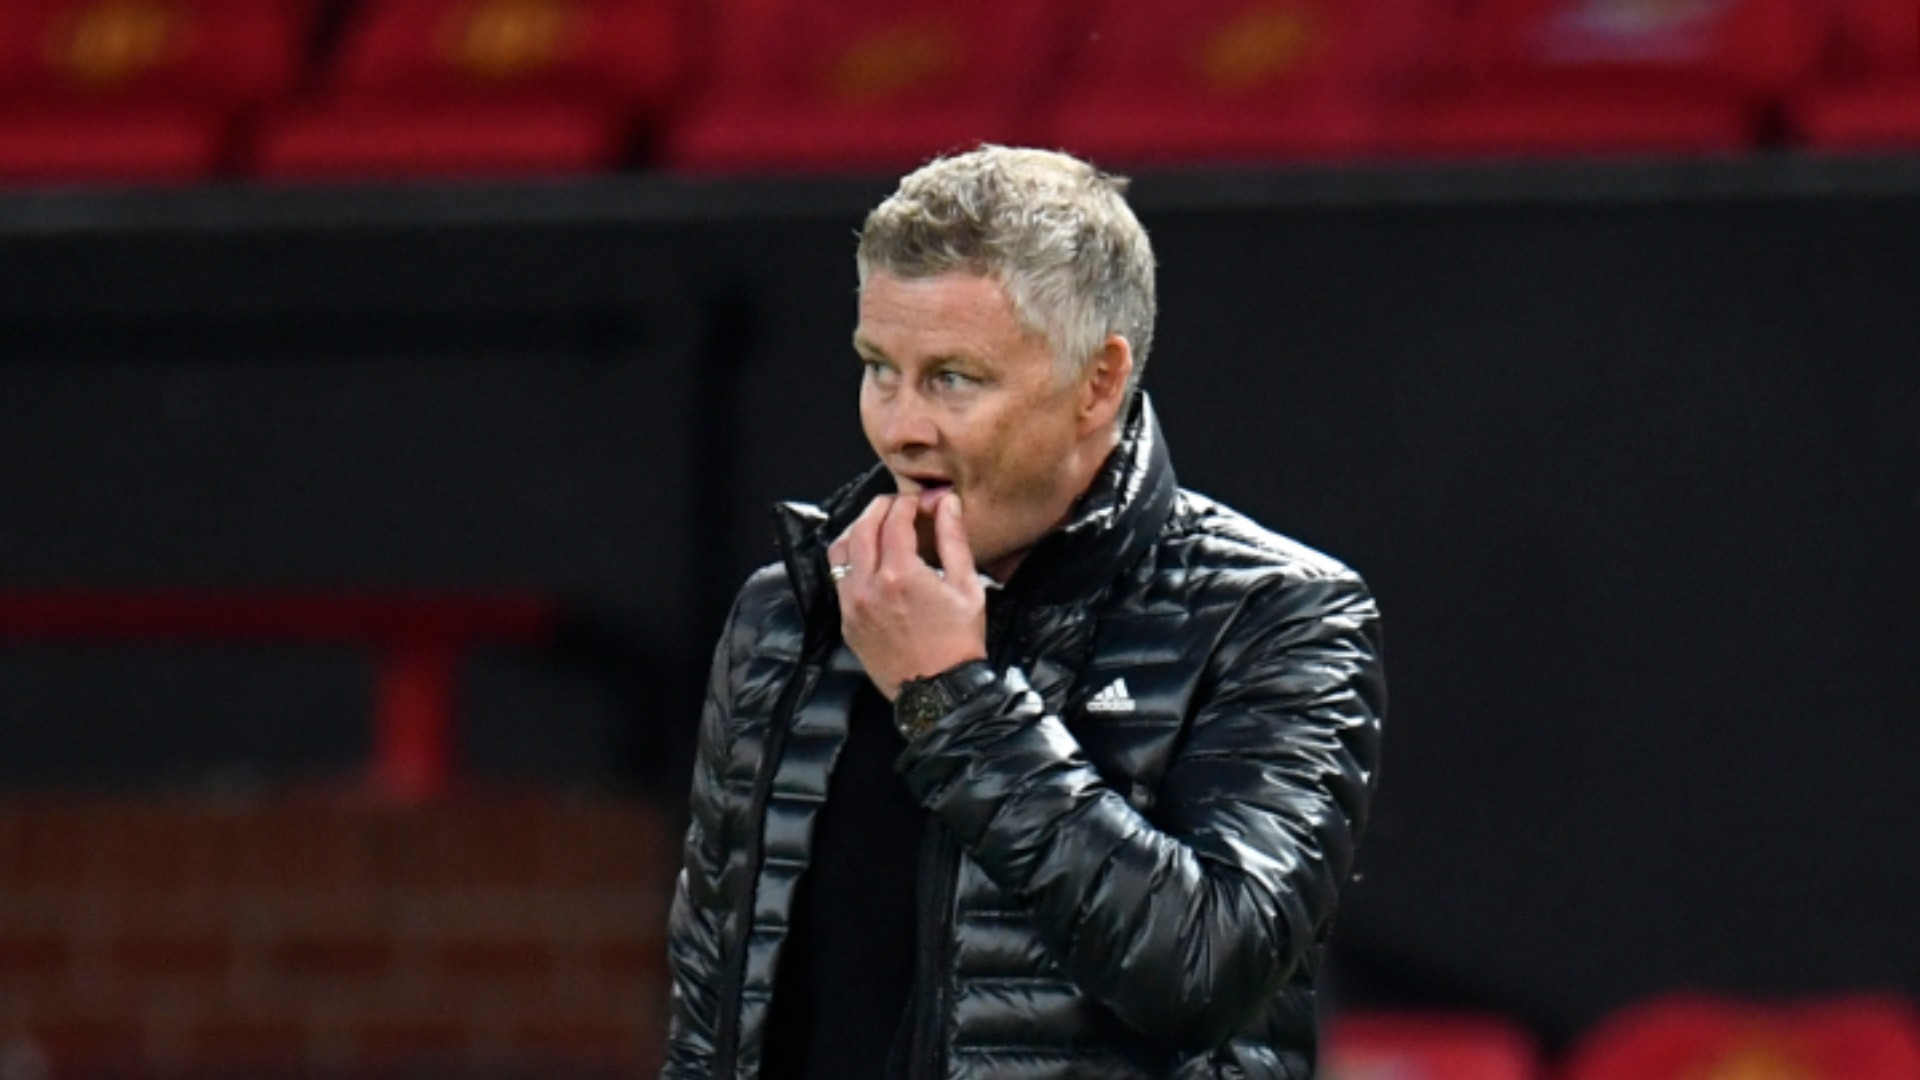 Ole Gunnar Solskjaer was rueful after Manchester United's draw with Southampton, though he felt Saints deserved a point at Old Trafford.